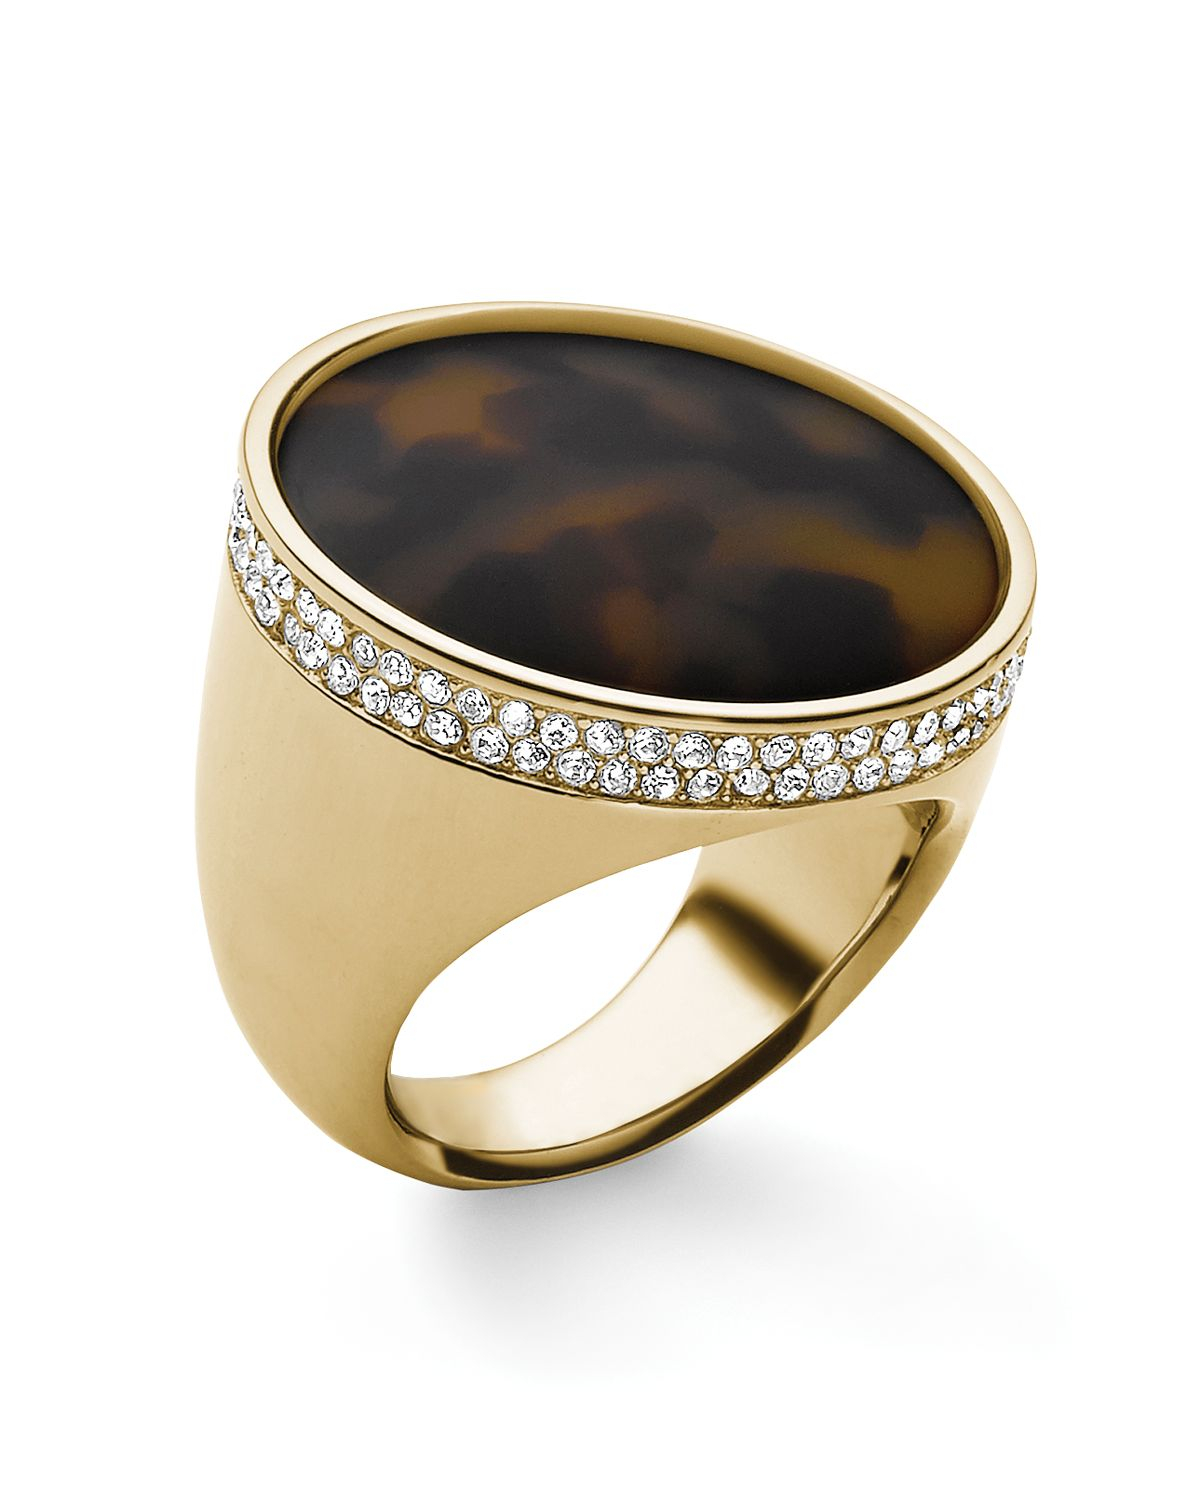 Michael Kors Dome Ring